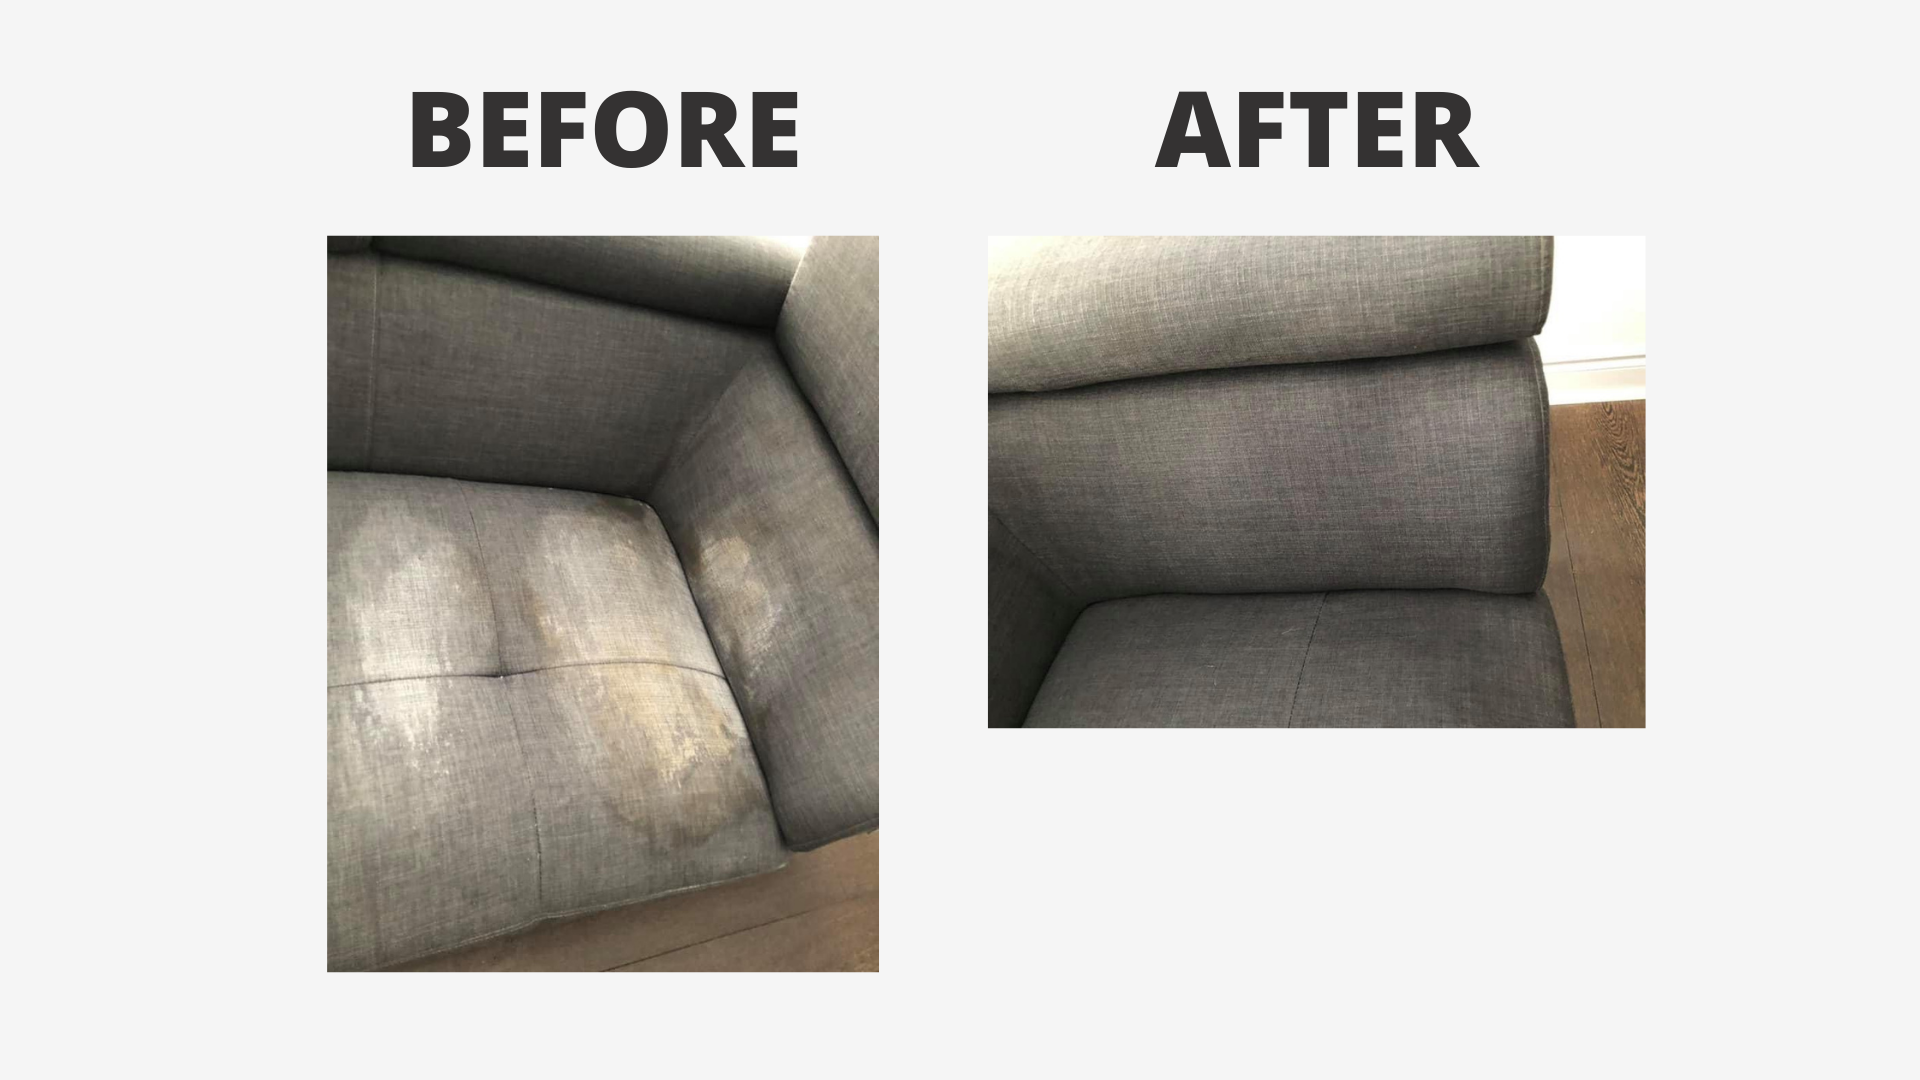 image of a couch with a stain on it beside another image of the same couch without a stain